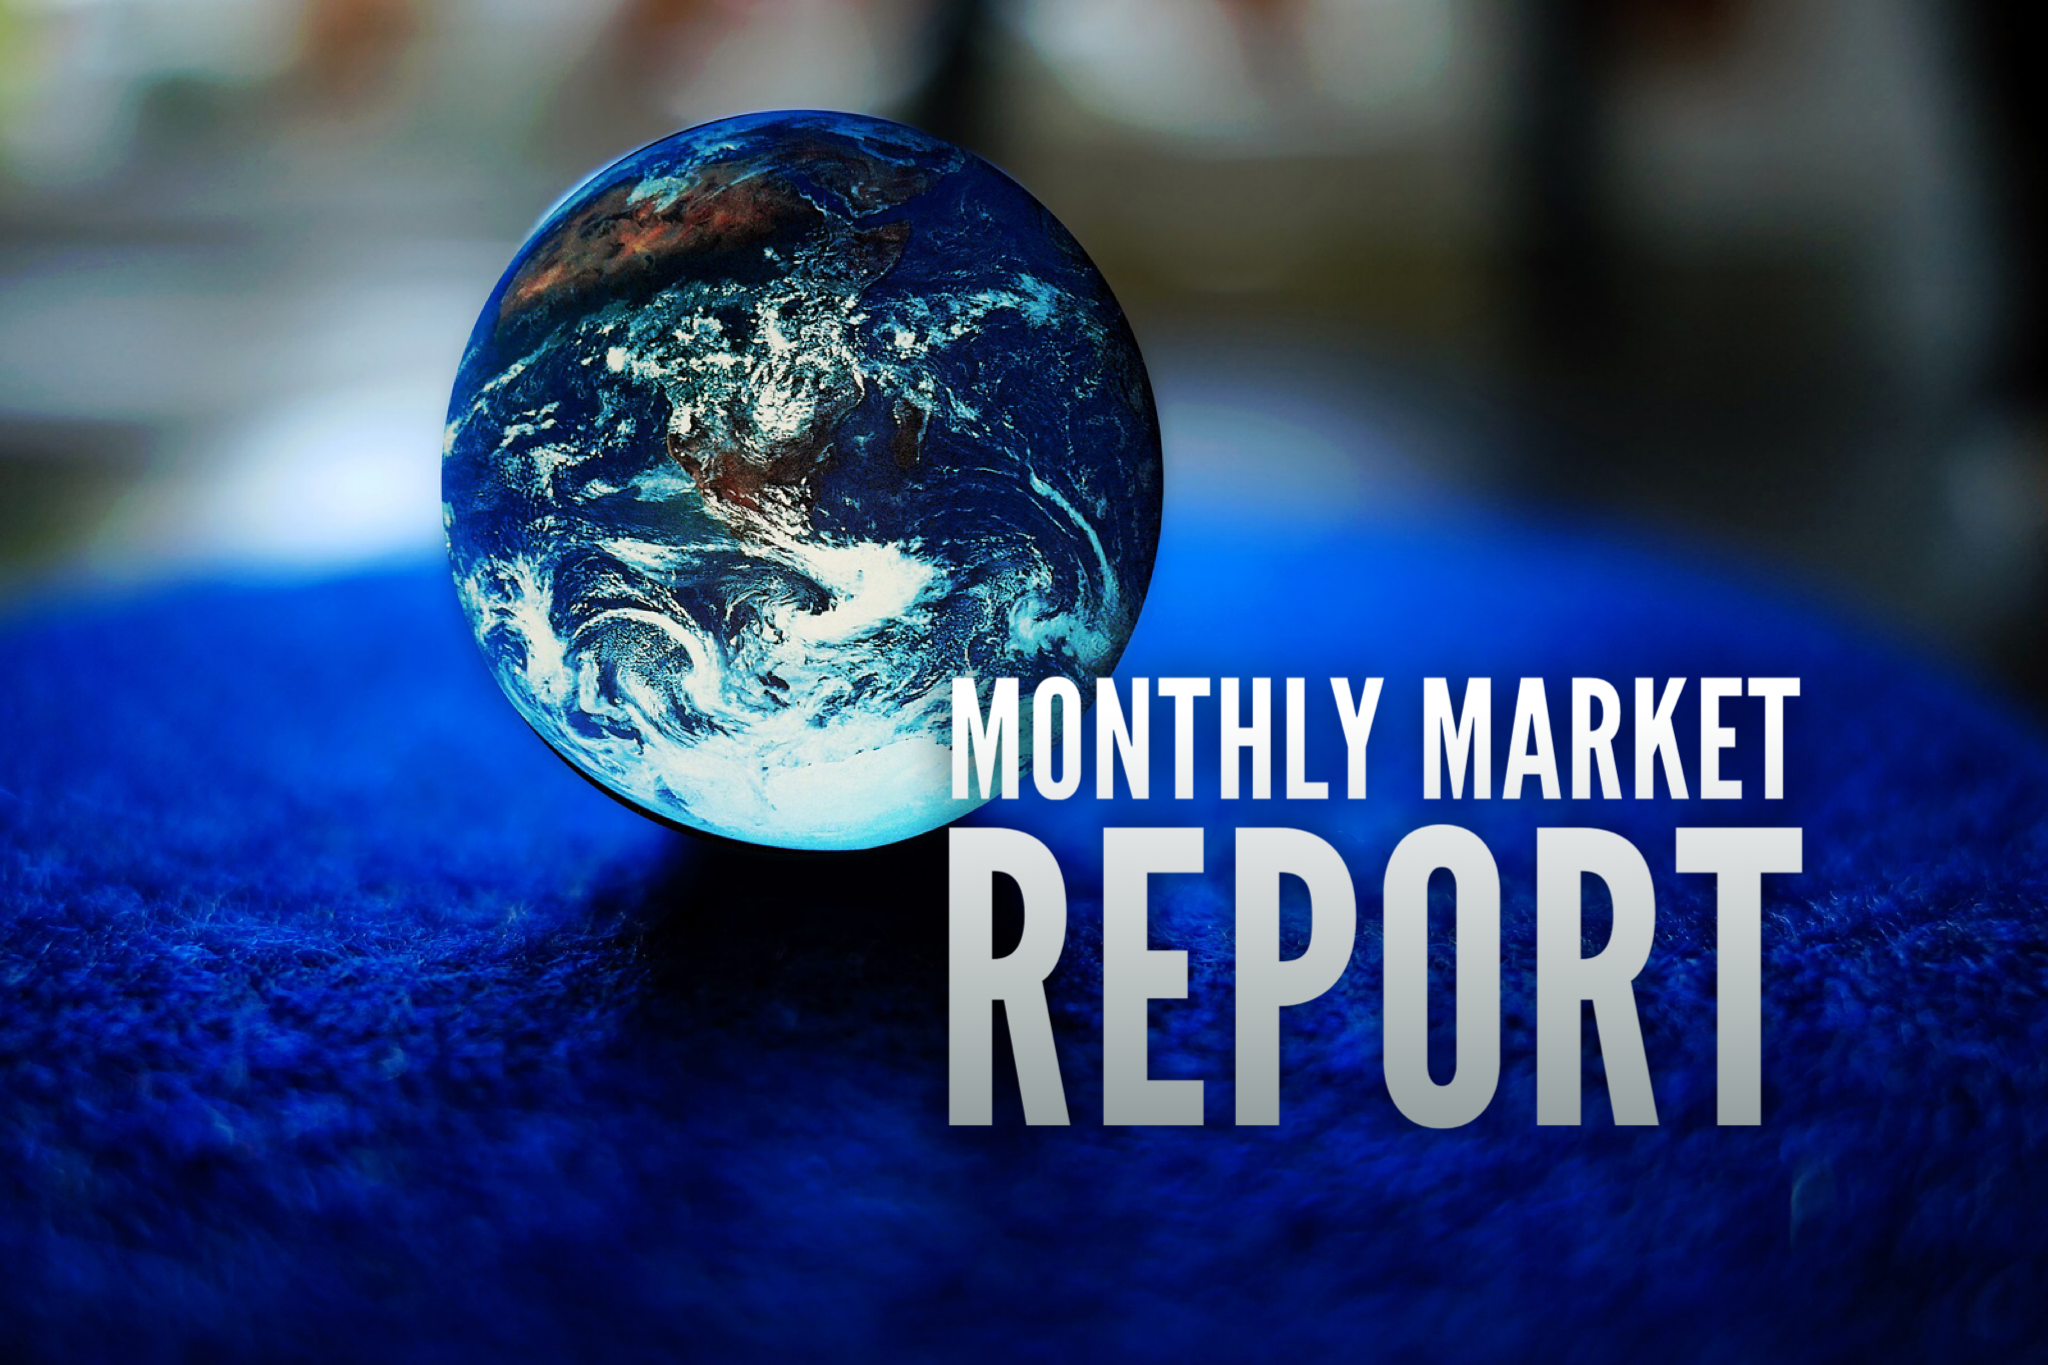 MONTHLY MARKET REPORT: MARCH 2019